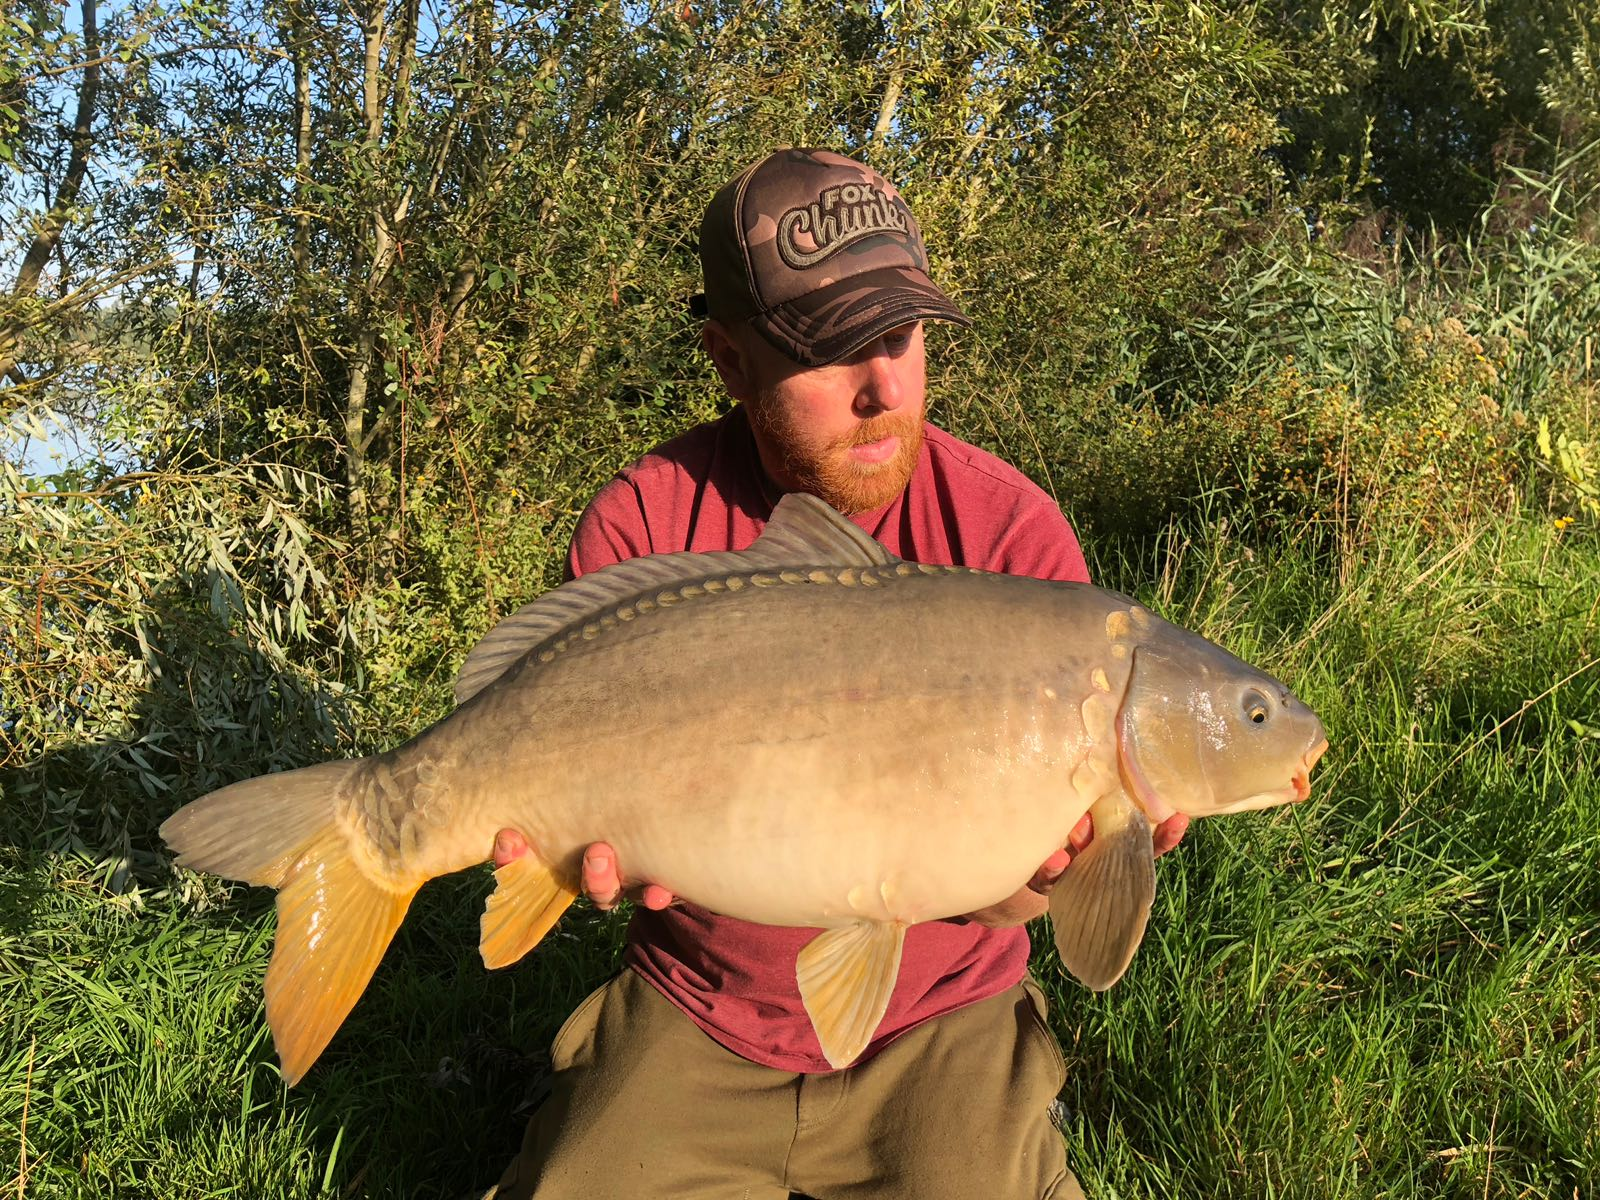 TIPS FOR CARP FISHING IN THE SUMMER - TOTAL FISHING TACKLE CARP SCHOOL